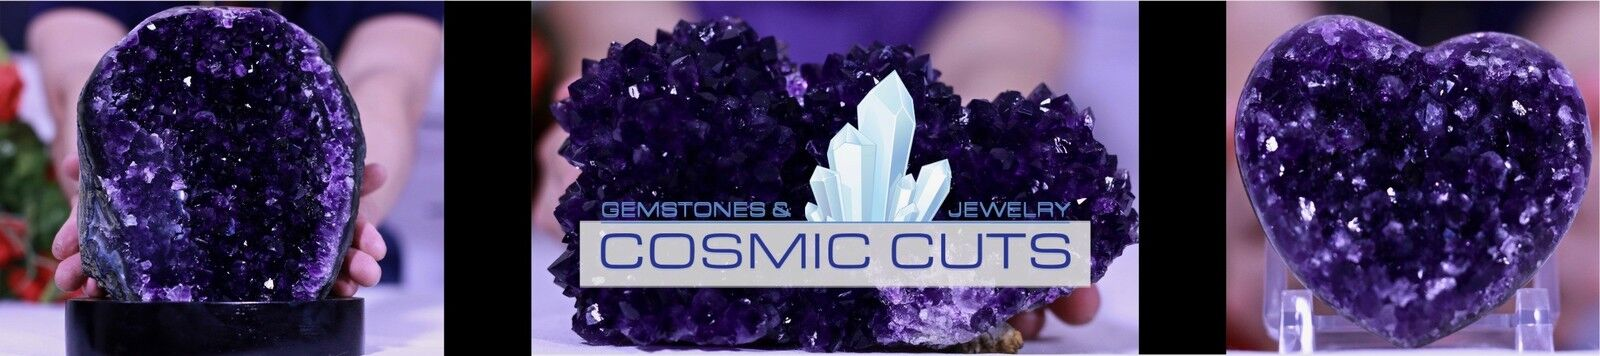 CosmicCuts Gemstones and Jewelry